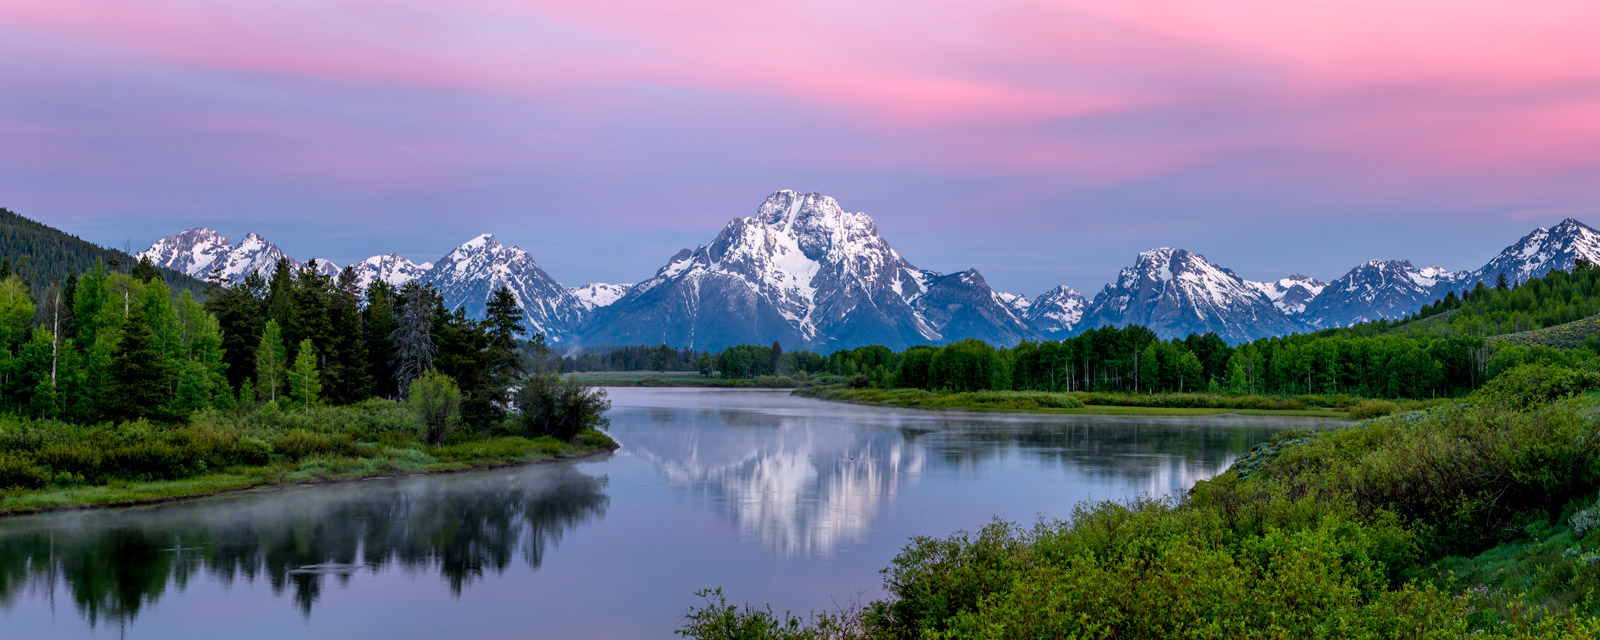 A Limited Edition, Fine Art photograph of Oxbow Bend with pink morning clouds and a snow capped Mount Moran reflecting in the...